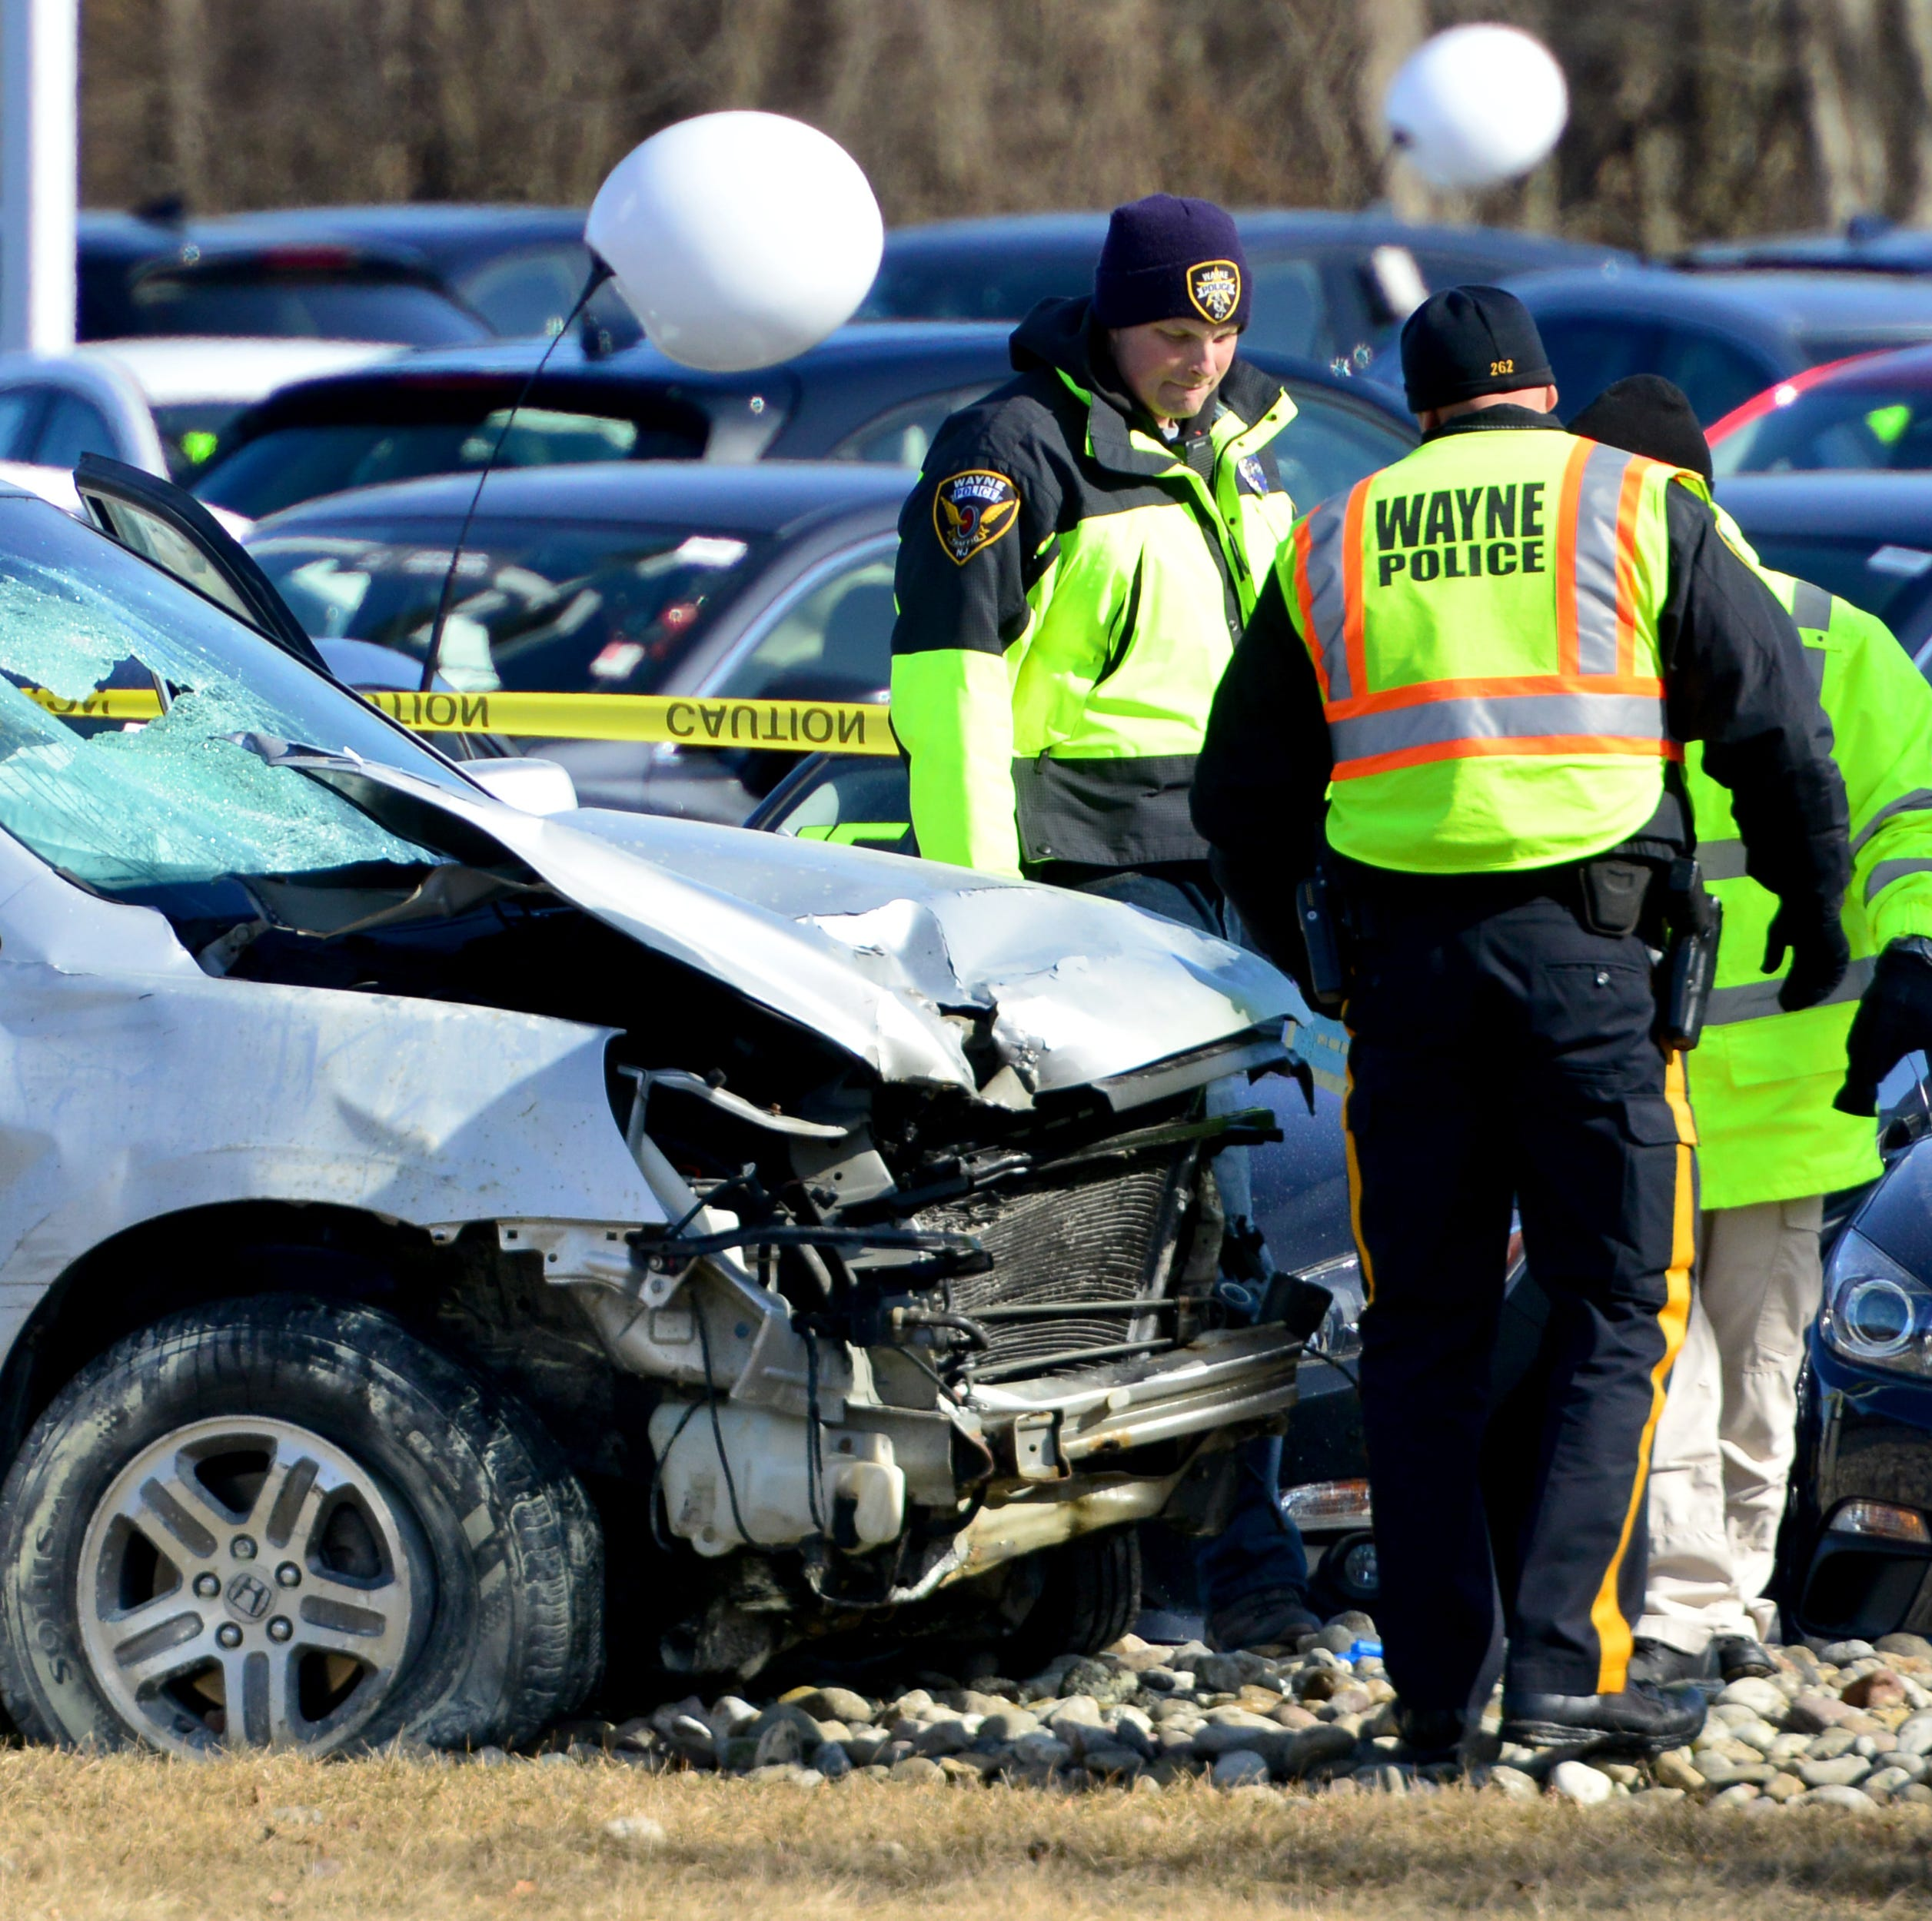 Prosecutor's office investigating multi-car crash on Route 23 in Wayne